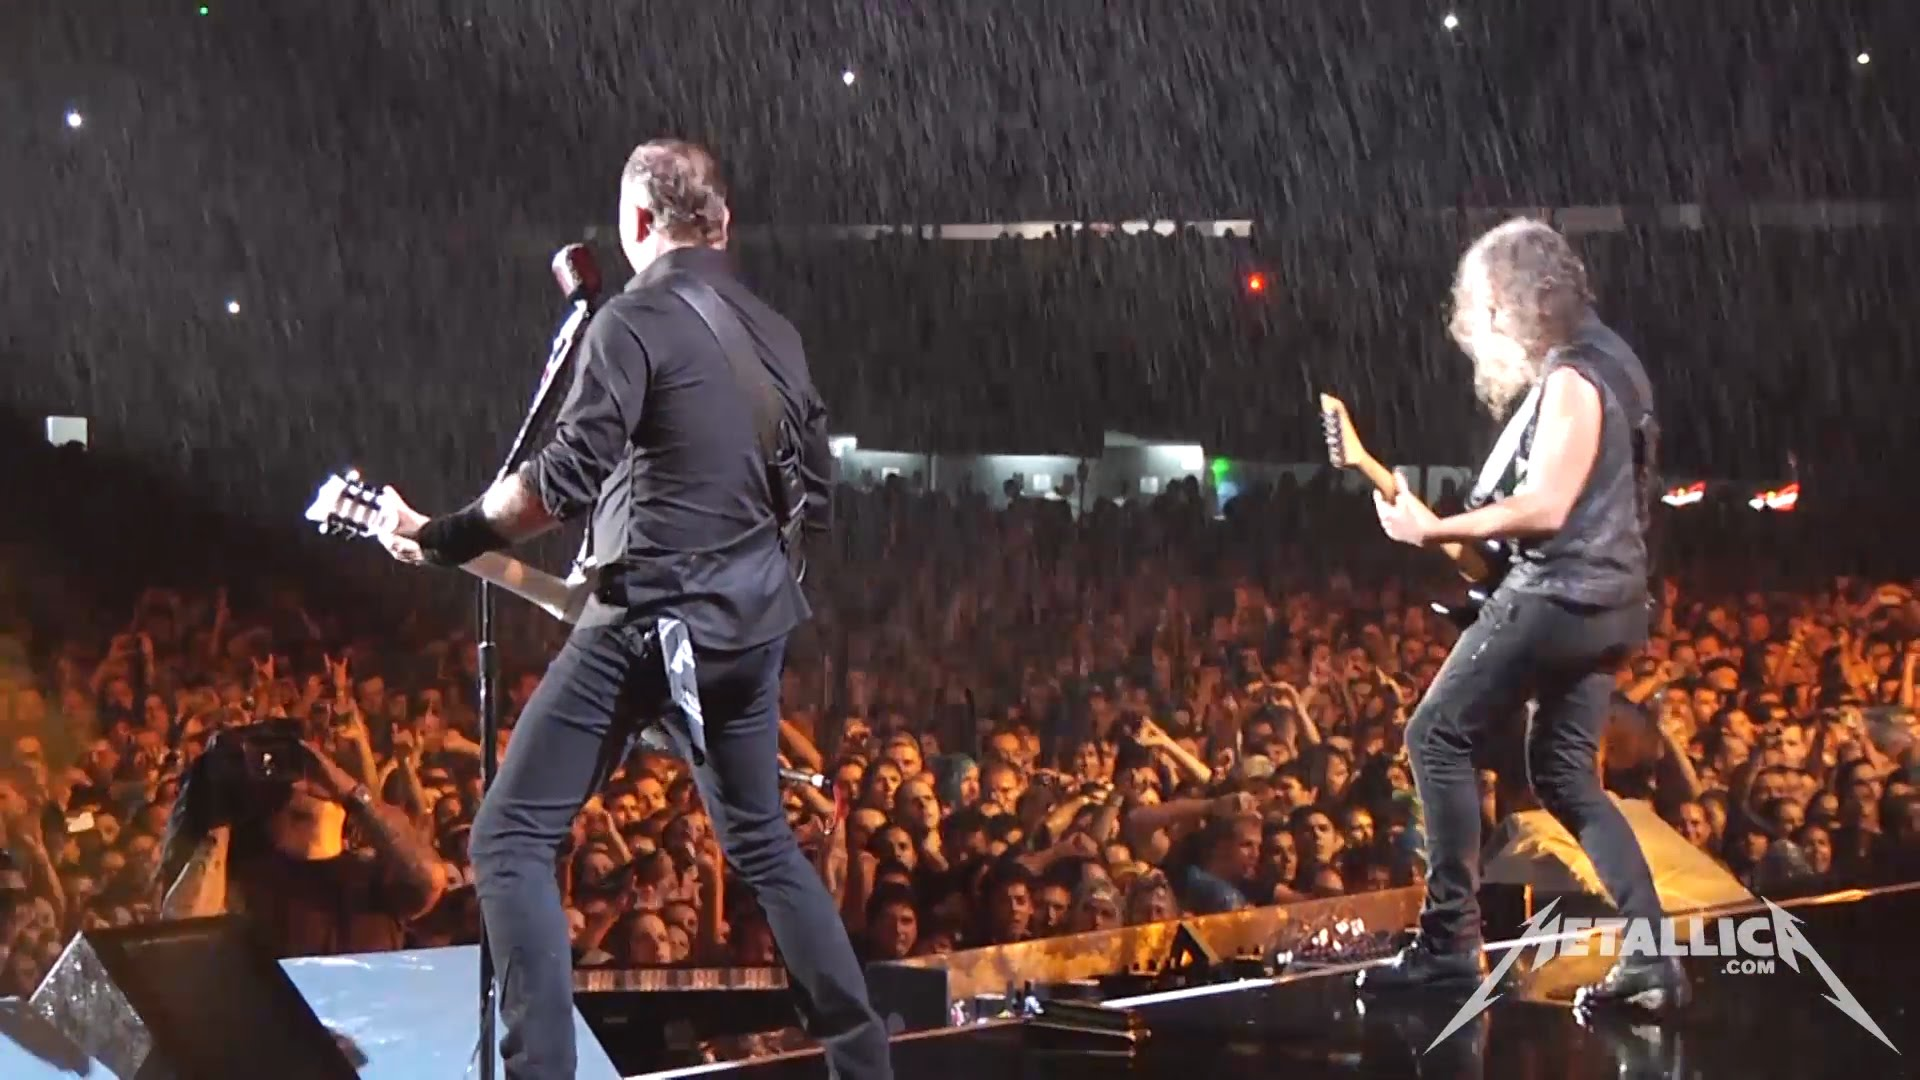 Metallica Battery & Whiskey in the Jar (MetOnTour - So Paulo, Brazil - 2014)